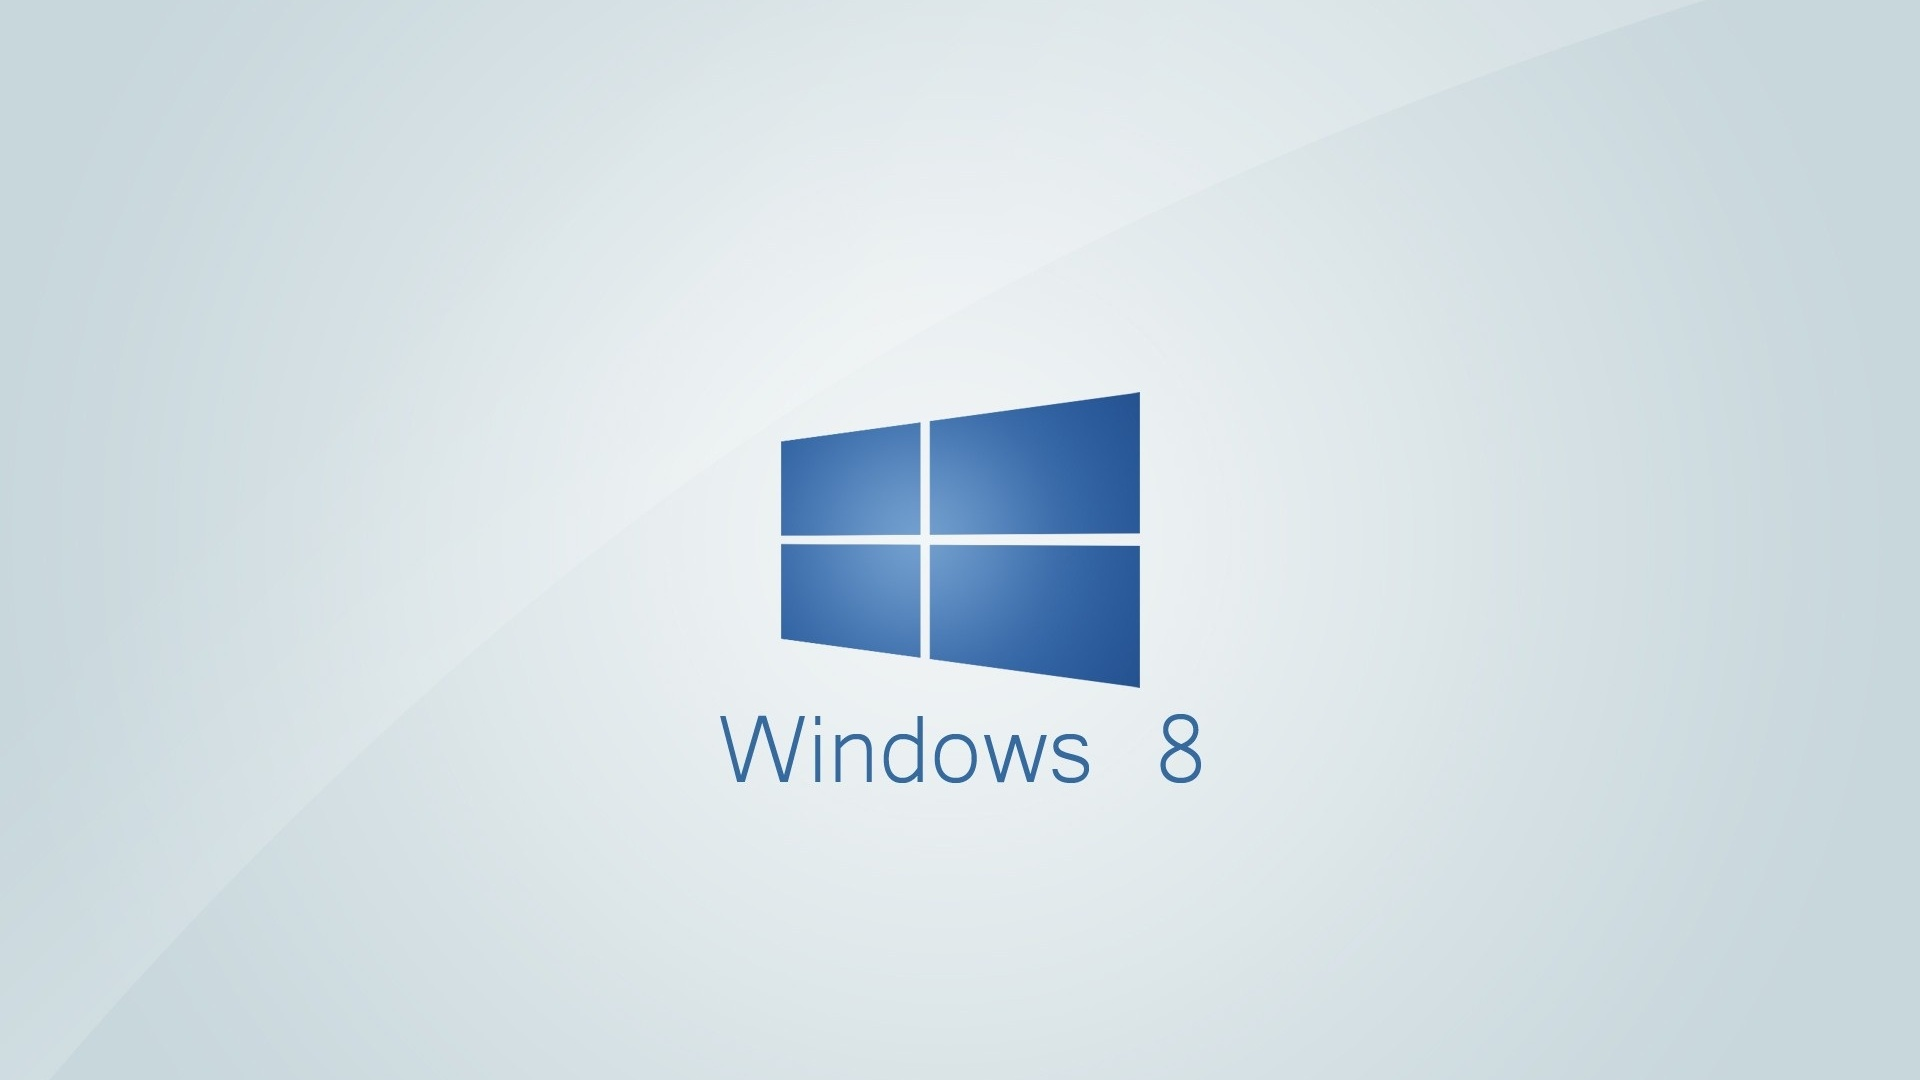 1920x1080 windows 8 blue logo desktop pc and mac wallpaper